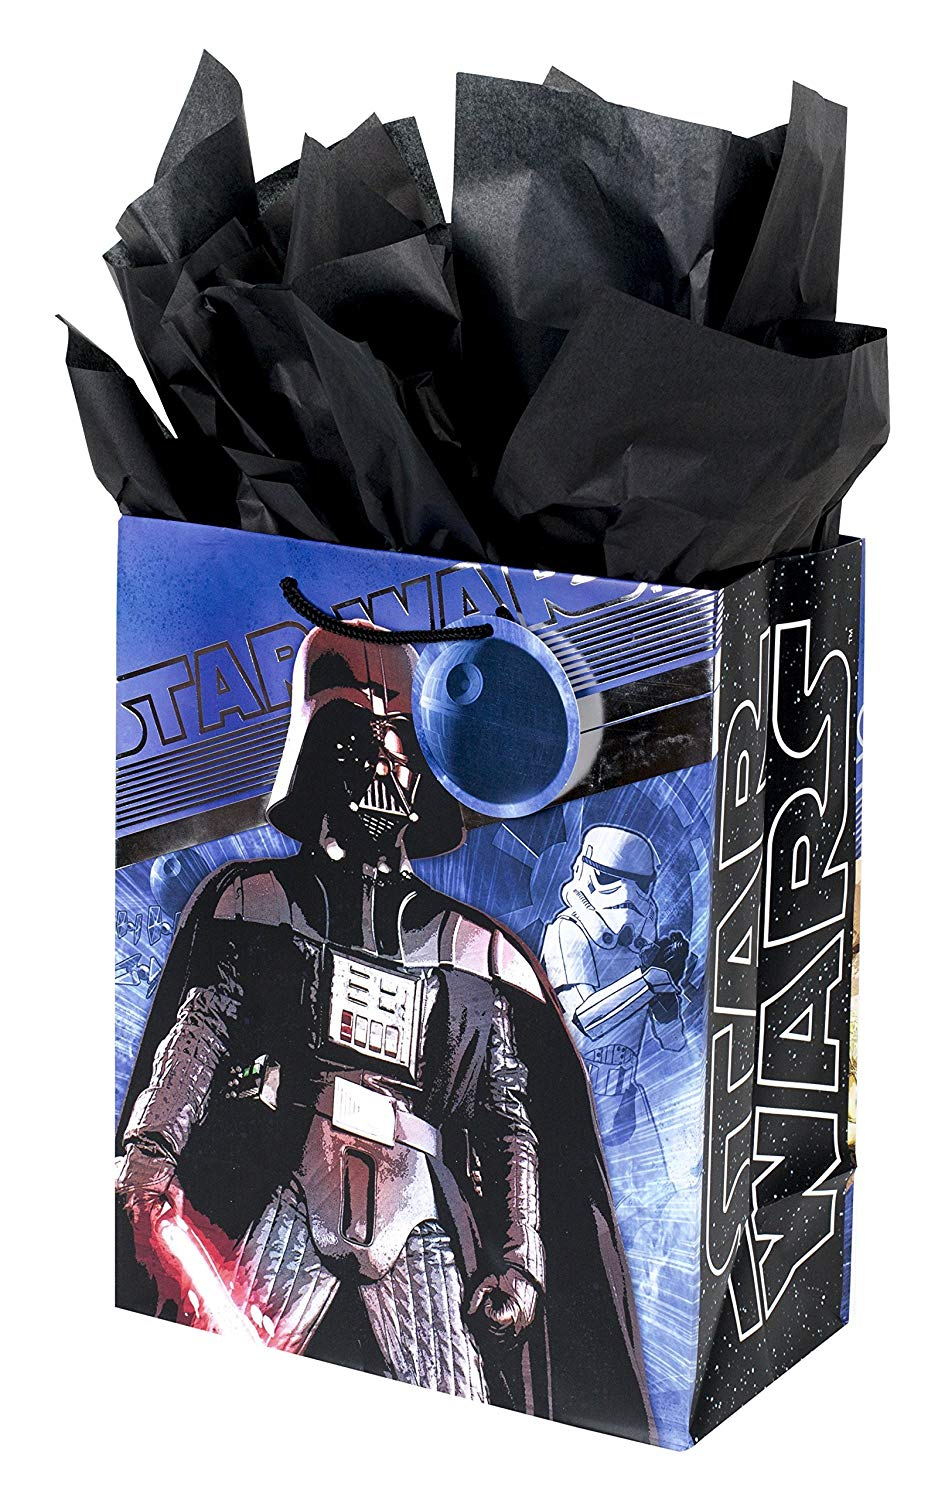 f726272dcdbc Unique Star Wars Gift Ideas From a Galaxy Far